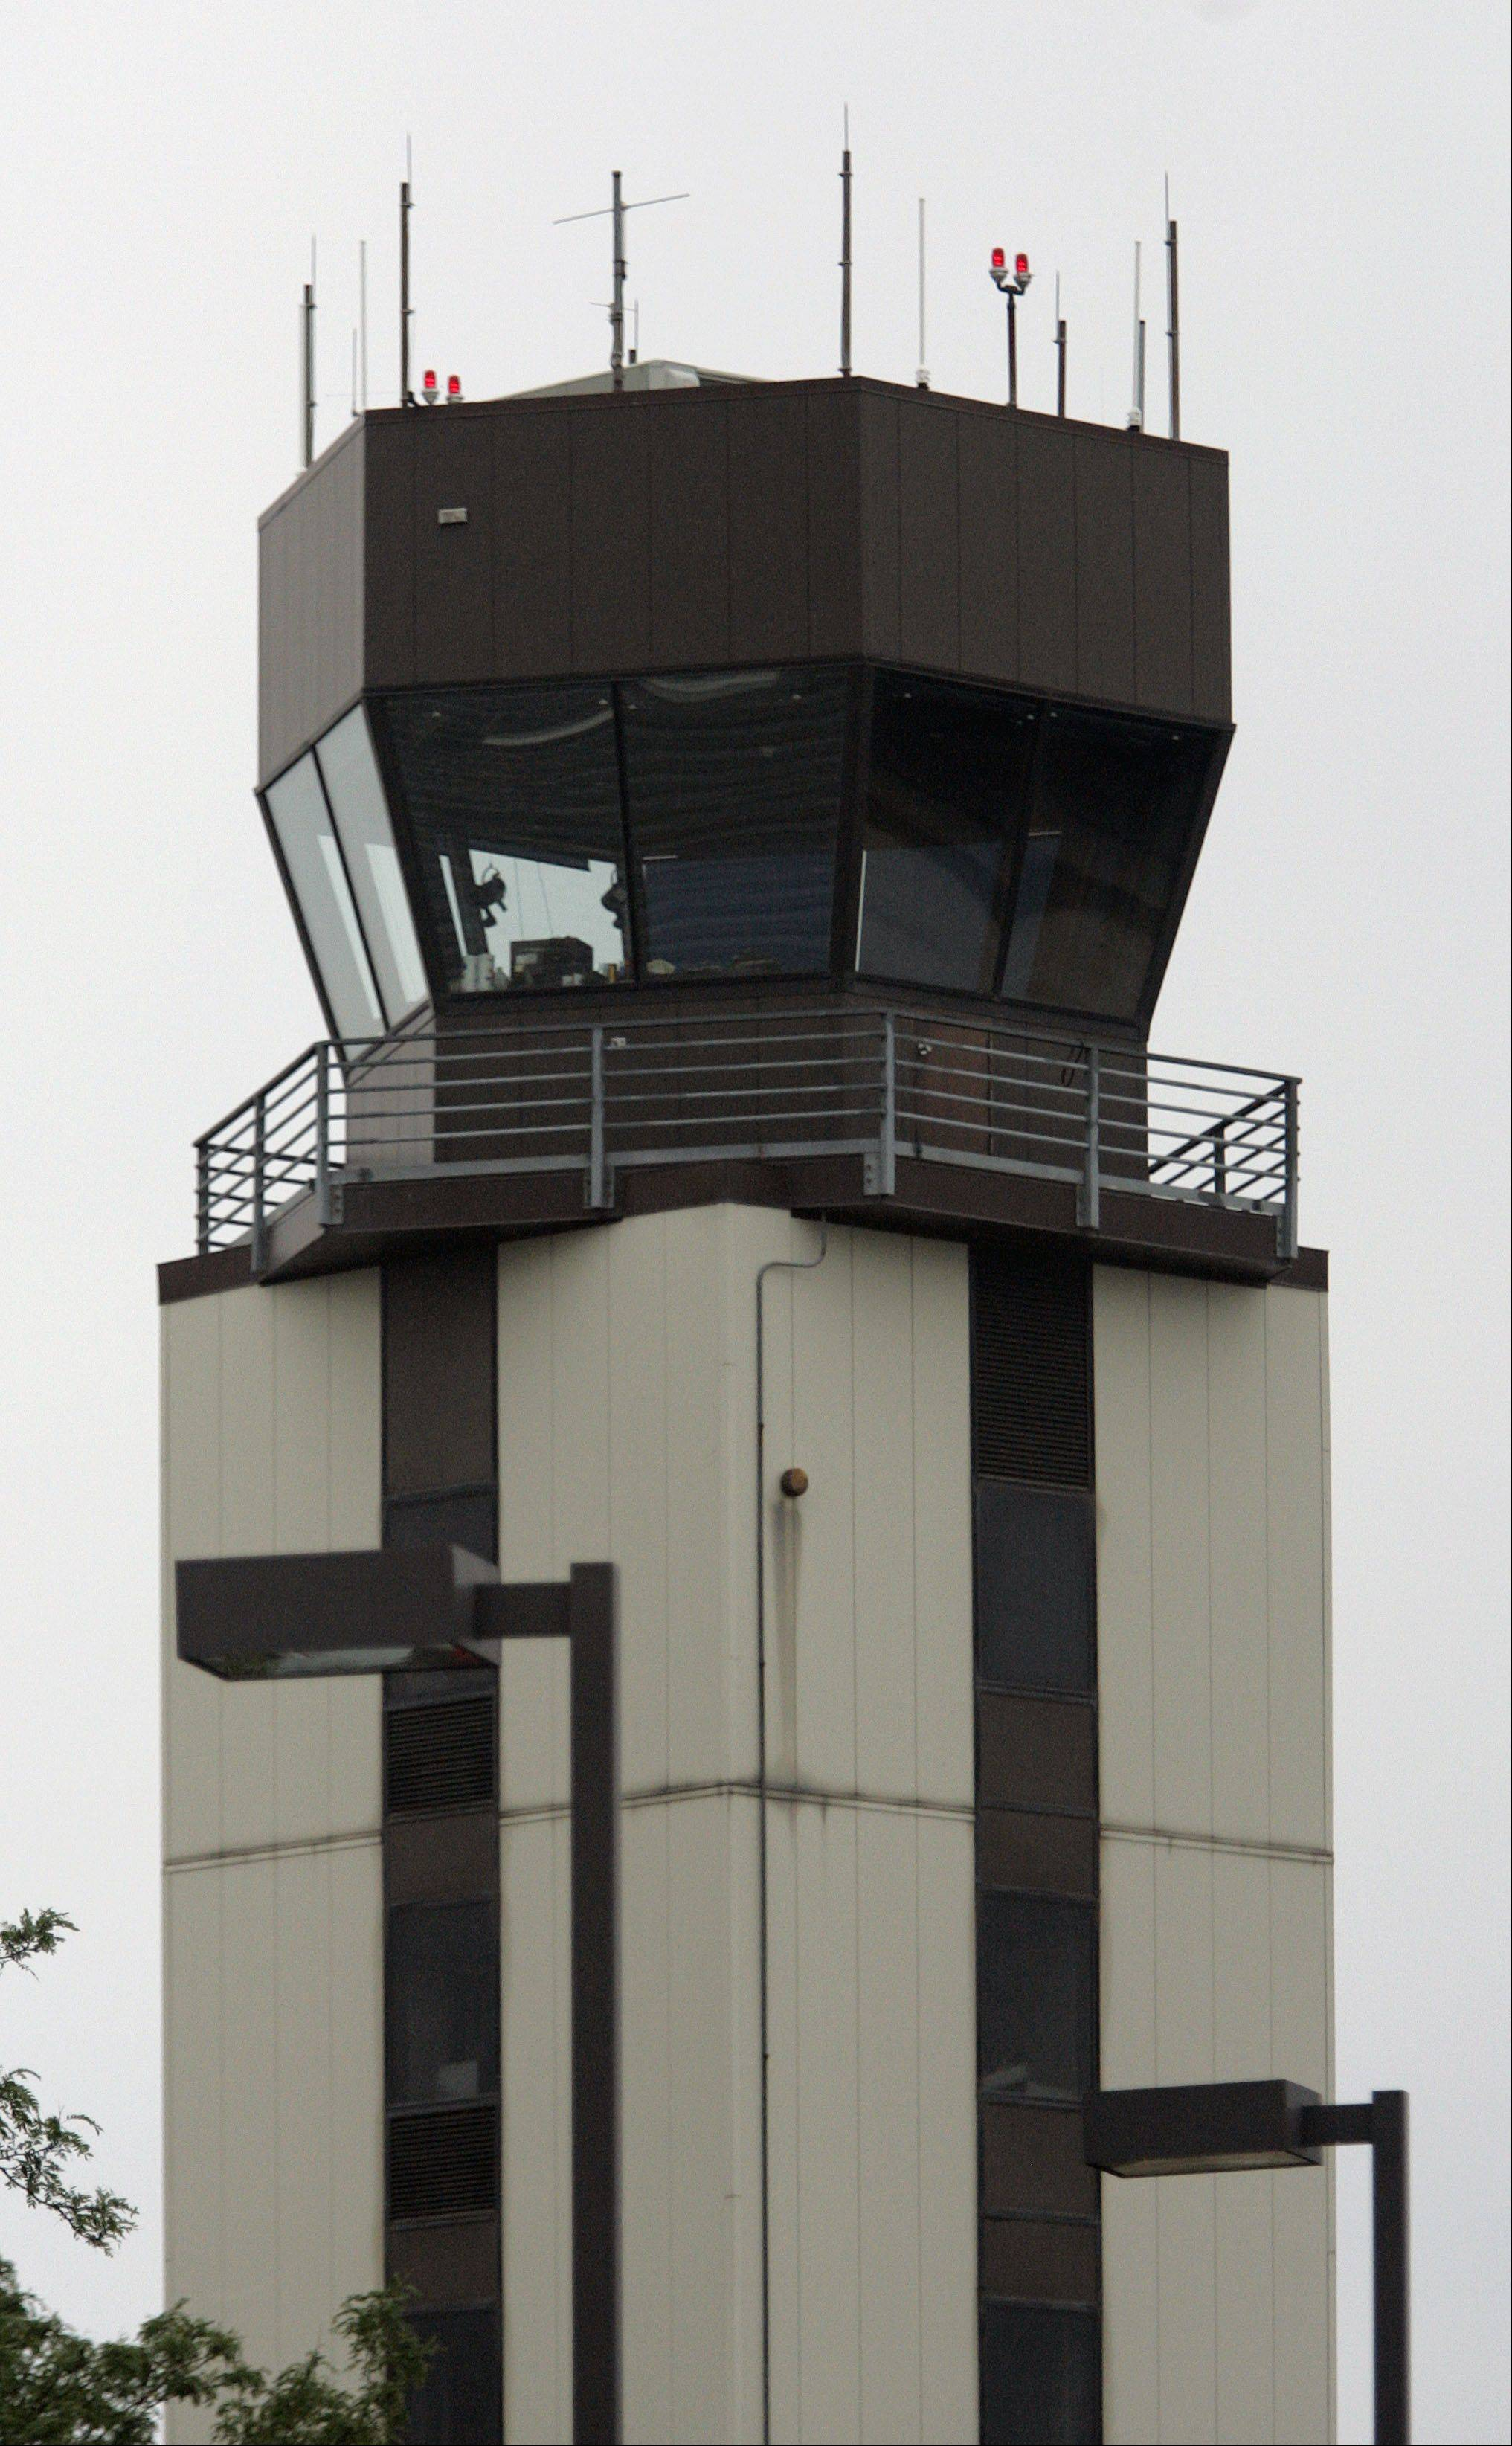 Waukegan Regional Airport's control tower could go dark unless someone intervenes to halt federal cuts.